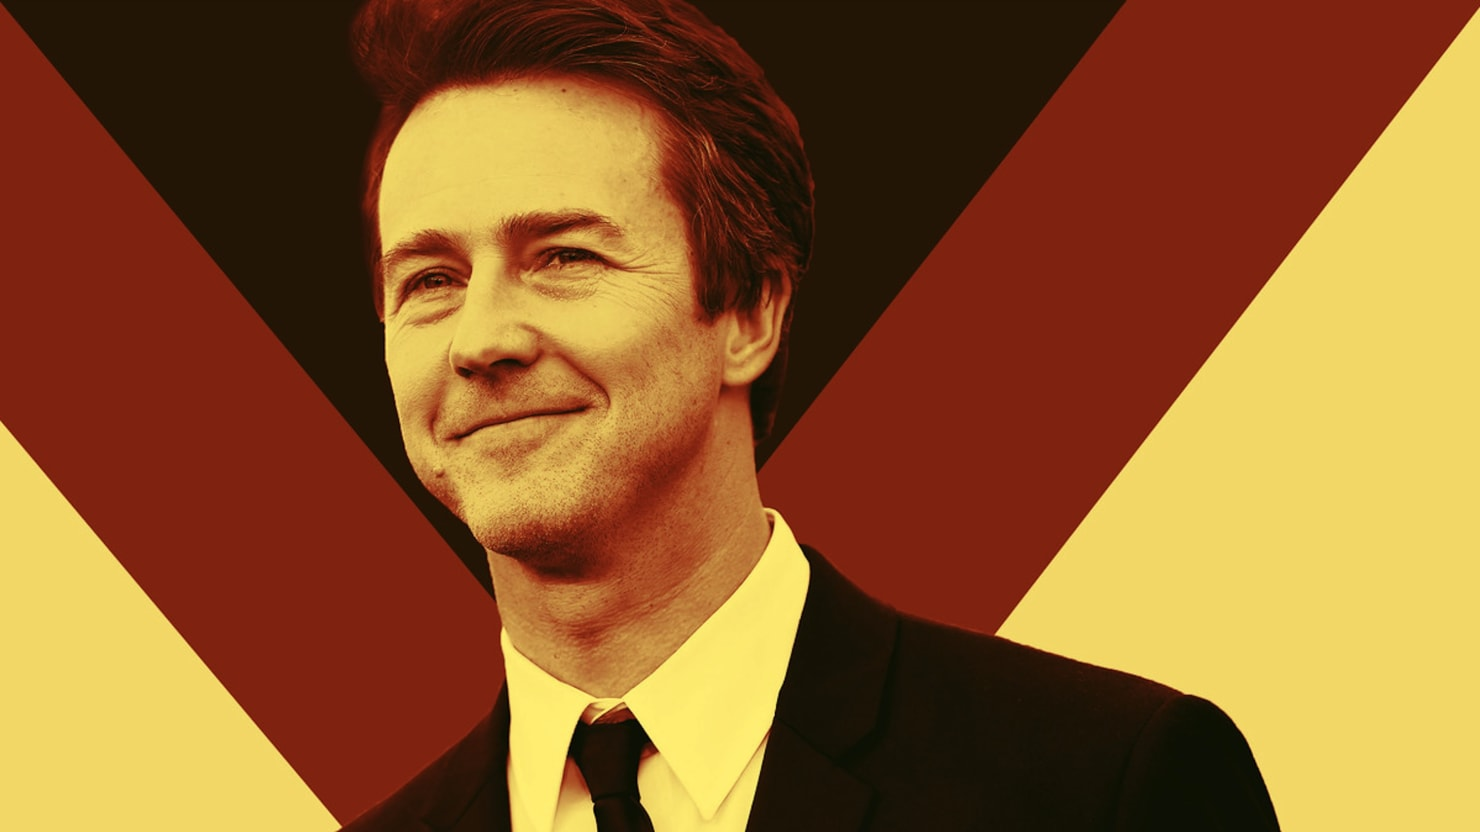 Edward Norton on Trump the 'Insane Clown Charlatan' and His Big Disagreement With Spielberg